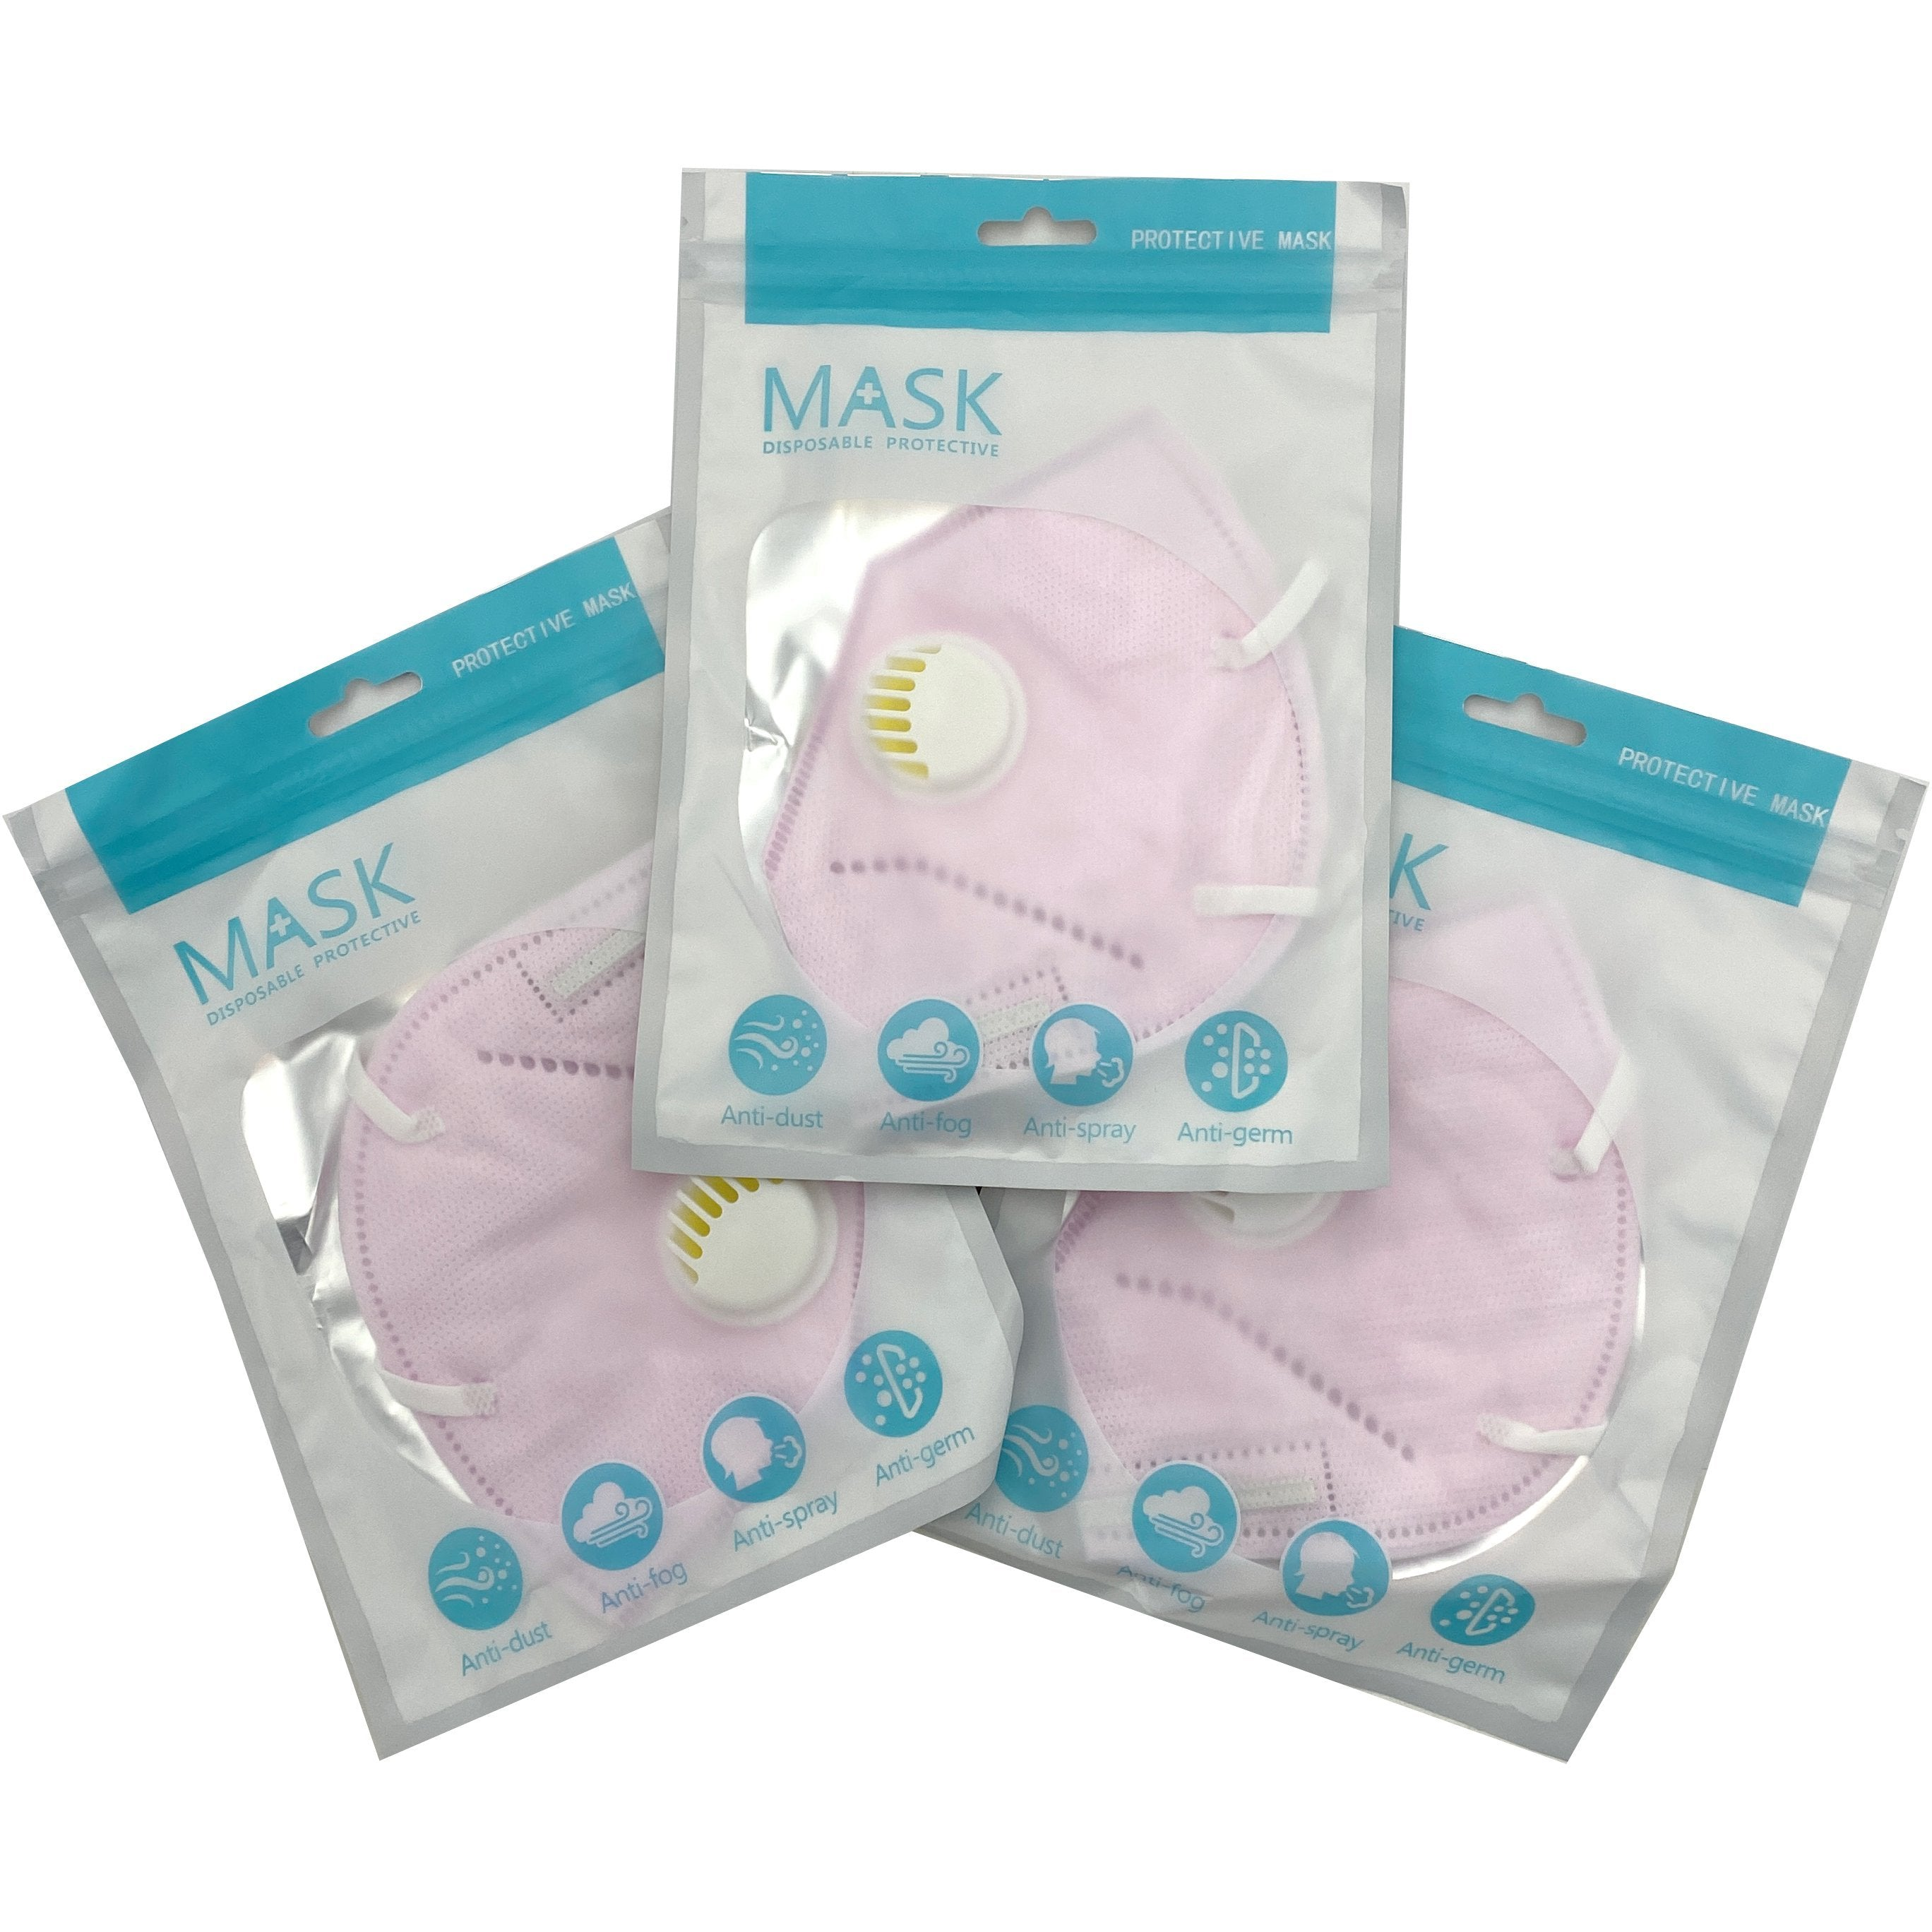 Emergency Protective Mask (Disposabe) 3-Pack - CPAP fix